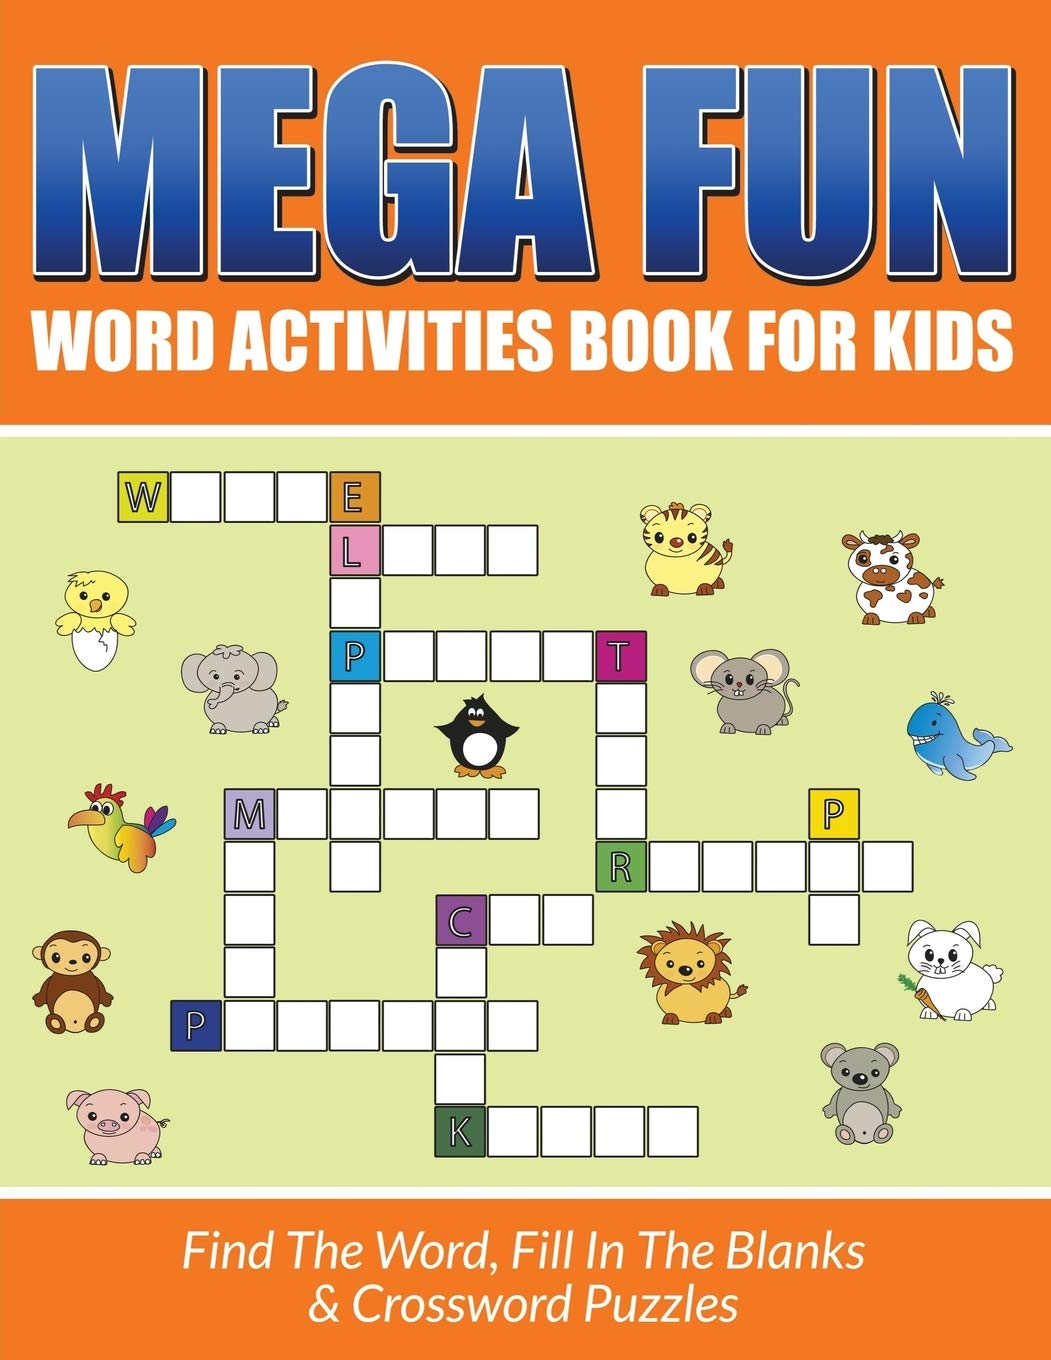 Mega Fun Word Activities Book For Kids Find The Fill In Blanks Crossword Puzzles Packer Bowe 9781682121405 Amazon Com Books